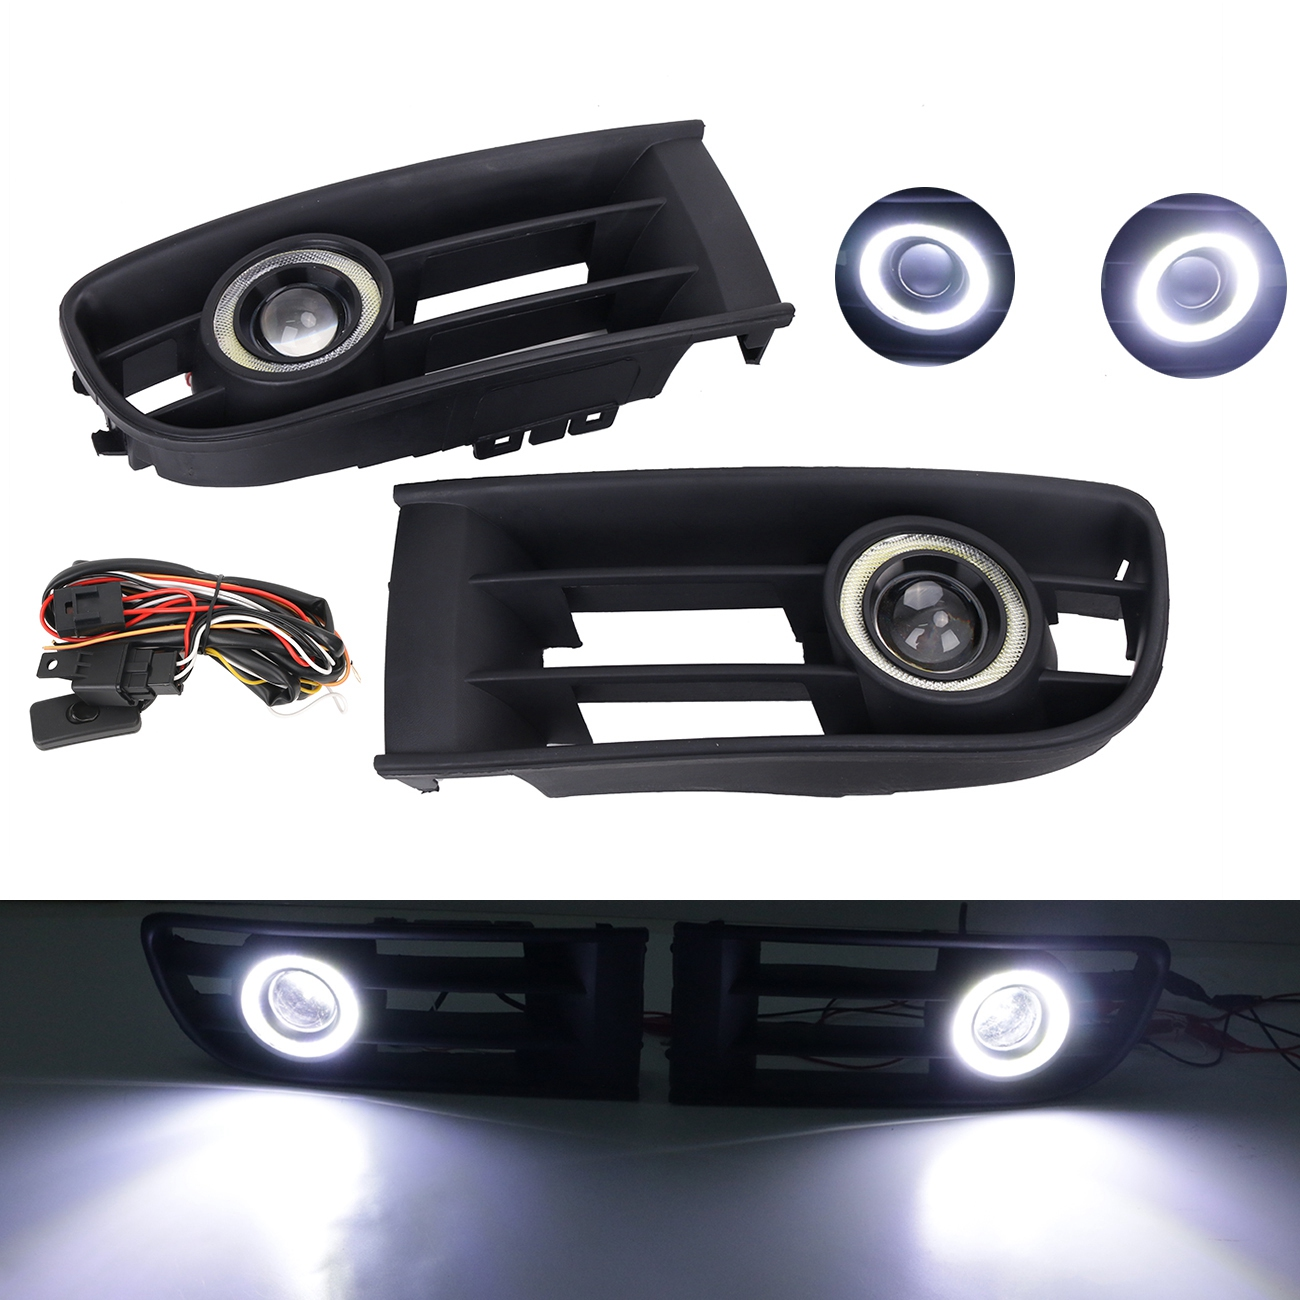 Front Bumper Fog Lamp Grille LED Convex lens Fog Light Angel Eyes For VW Polo 2001 2002 2003 2004 2005 DRL Car Accessory #P364 free shipping new pair halogen front fog lamp fog light for vw t5 polo crafter transporter campmob 7h0941699b 7h0941700b